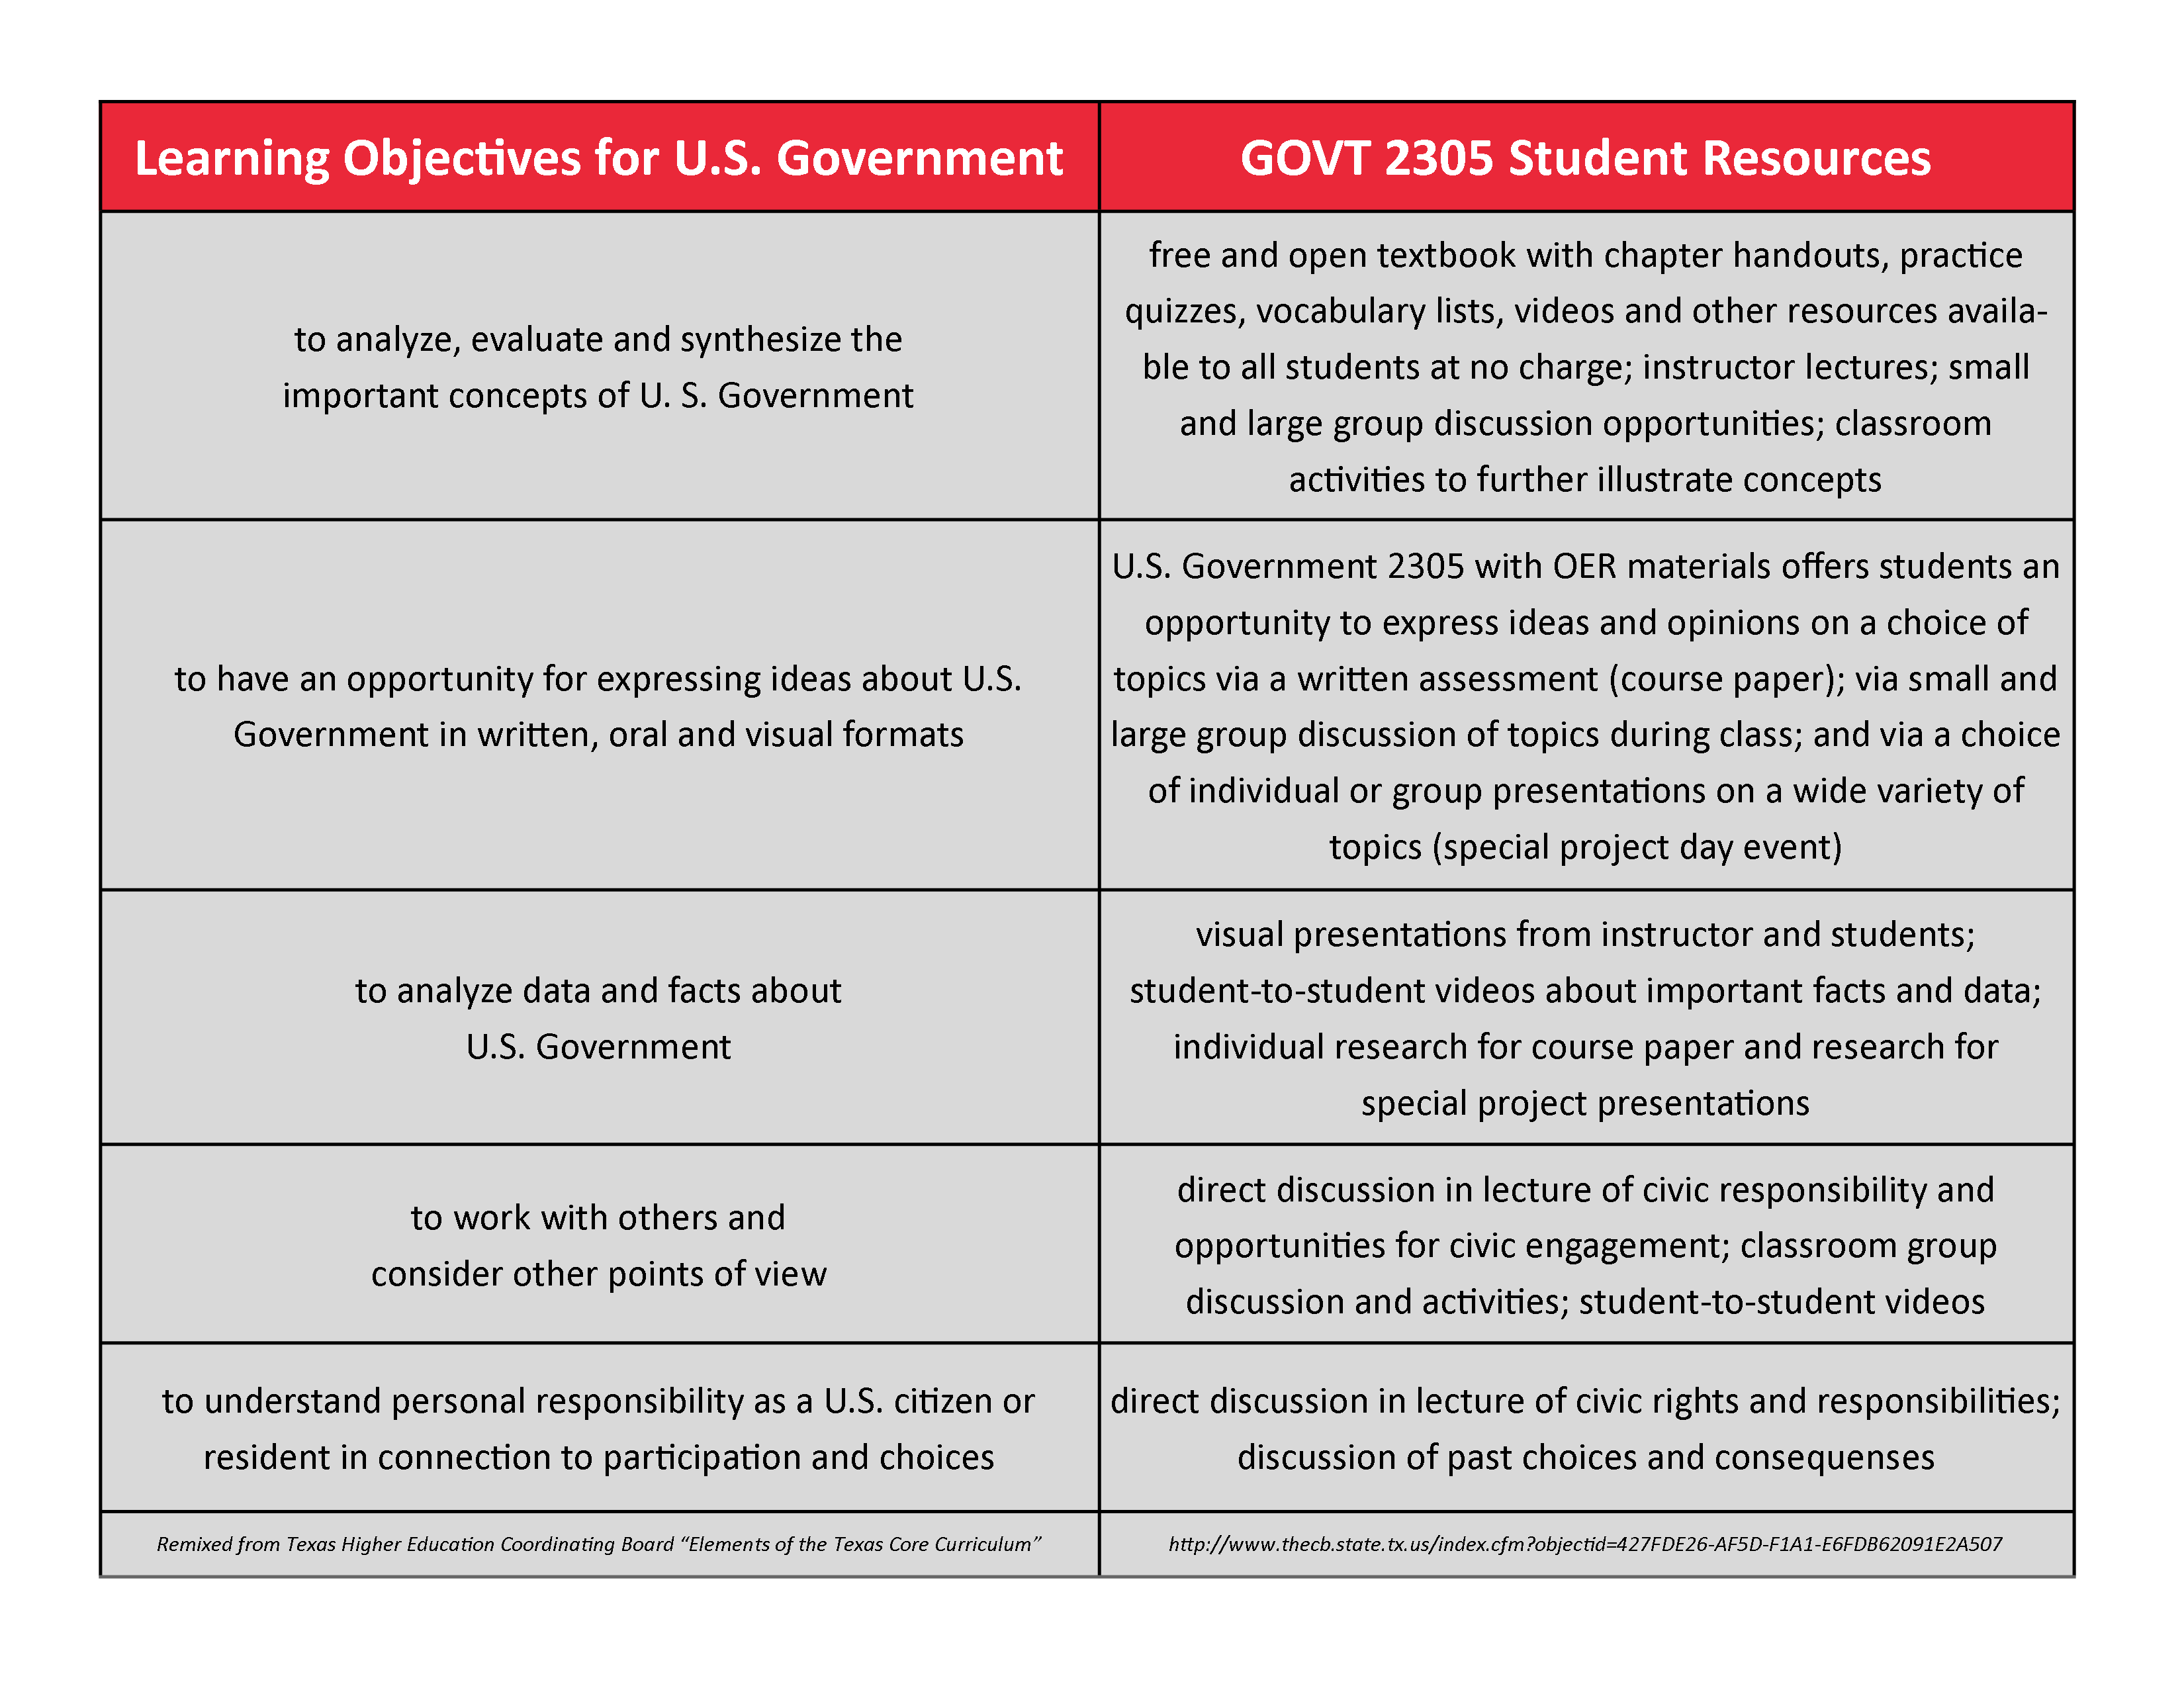 govt-2305-student-objectives-and-resources-for-achievement